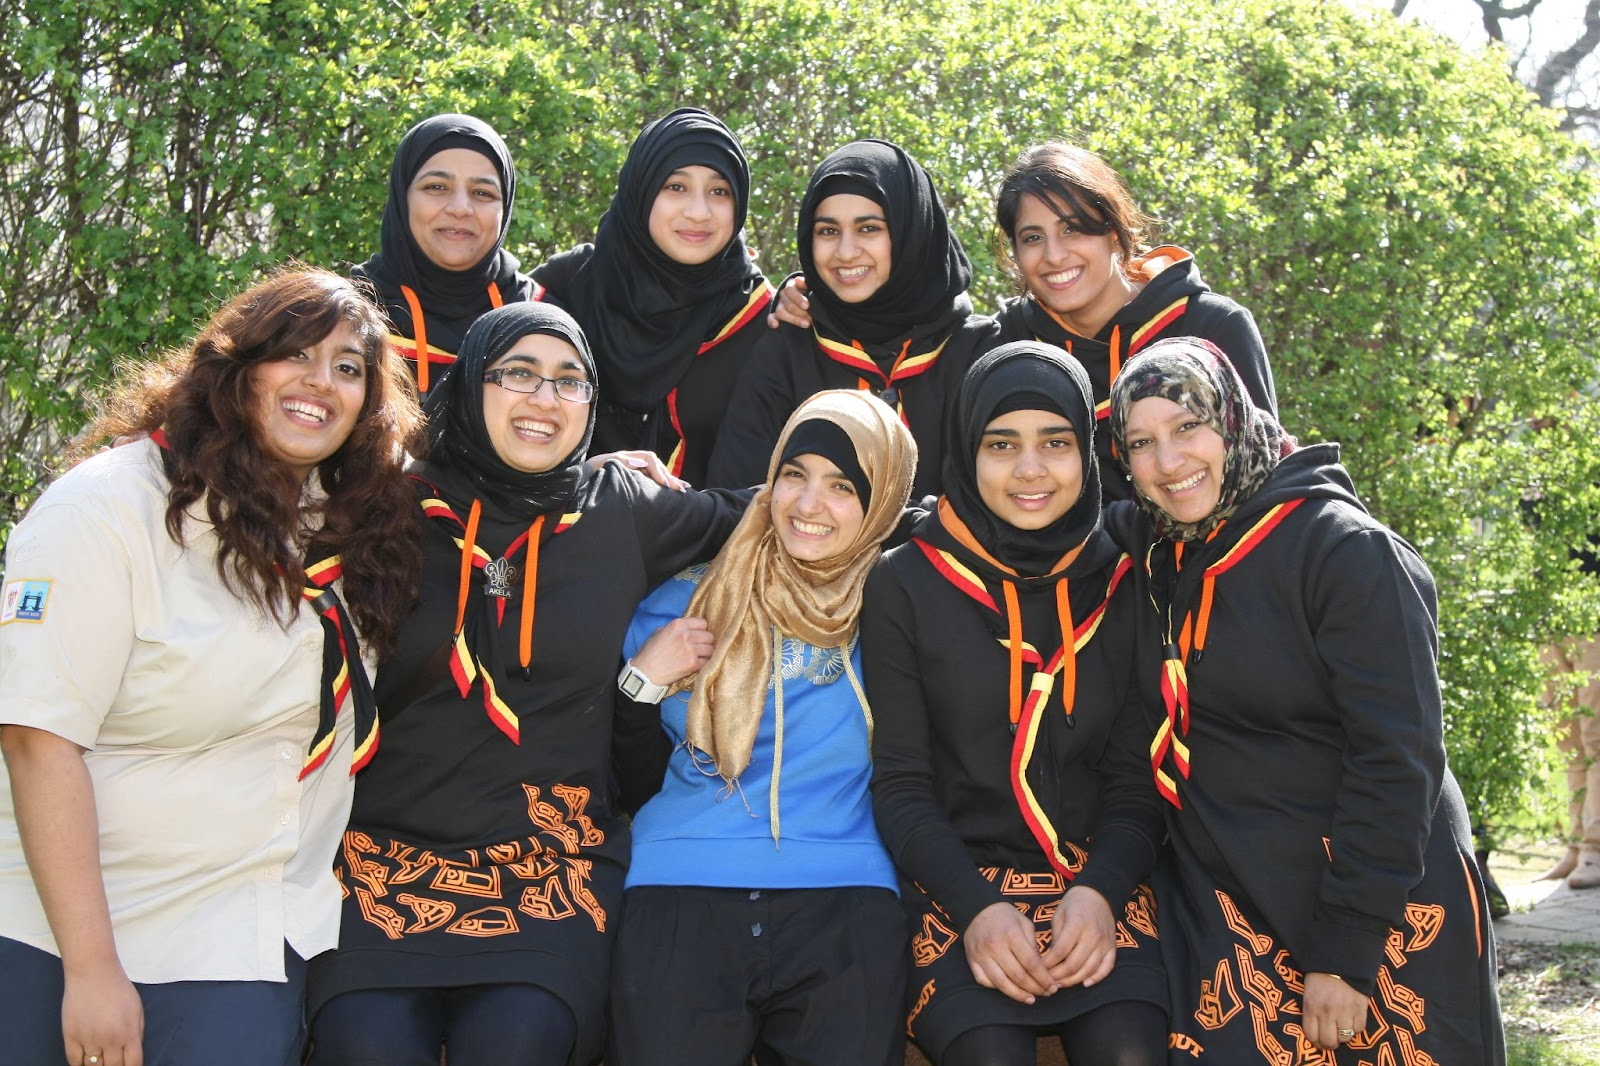 The Hijab For UK Scout Uniform